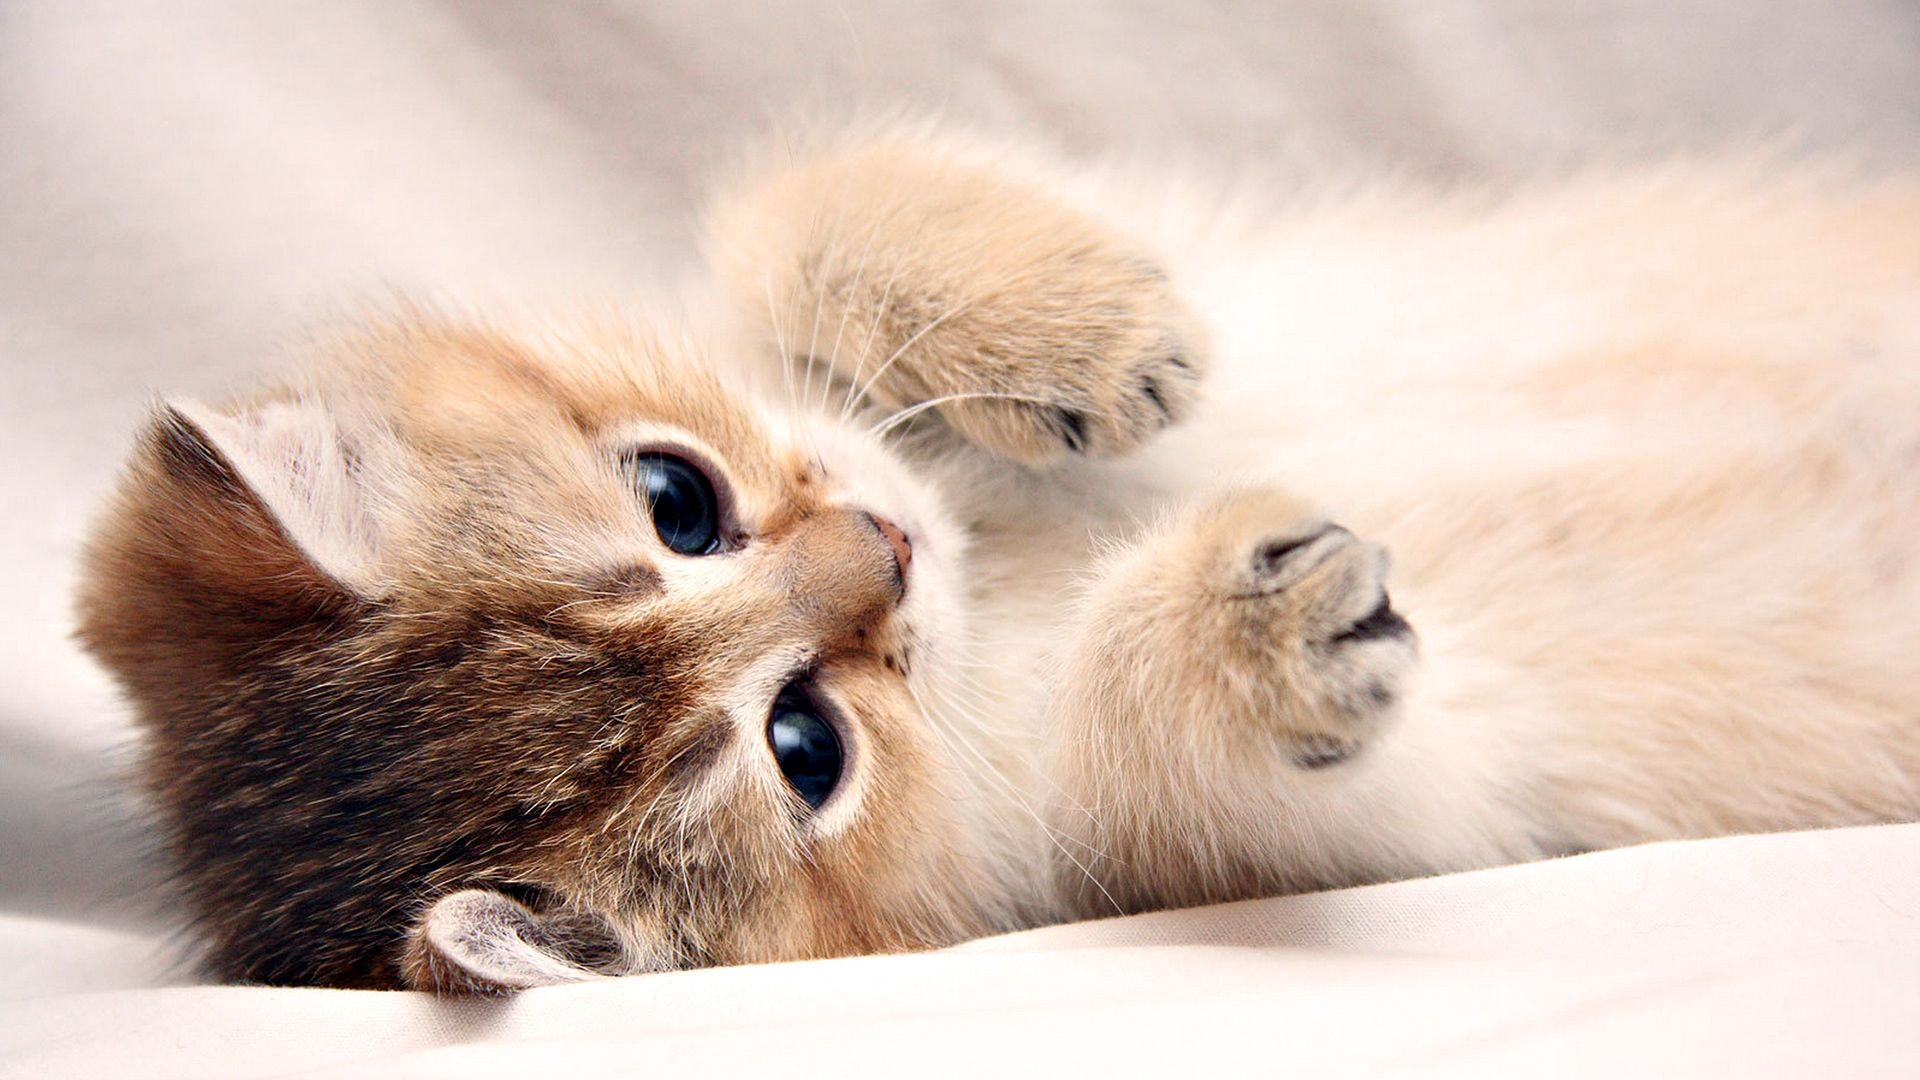 Image detail for Widescreen Laptop Wallpapers Cute Kitty Laptop